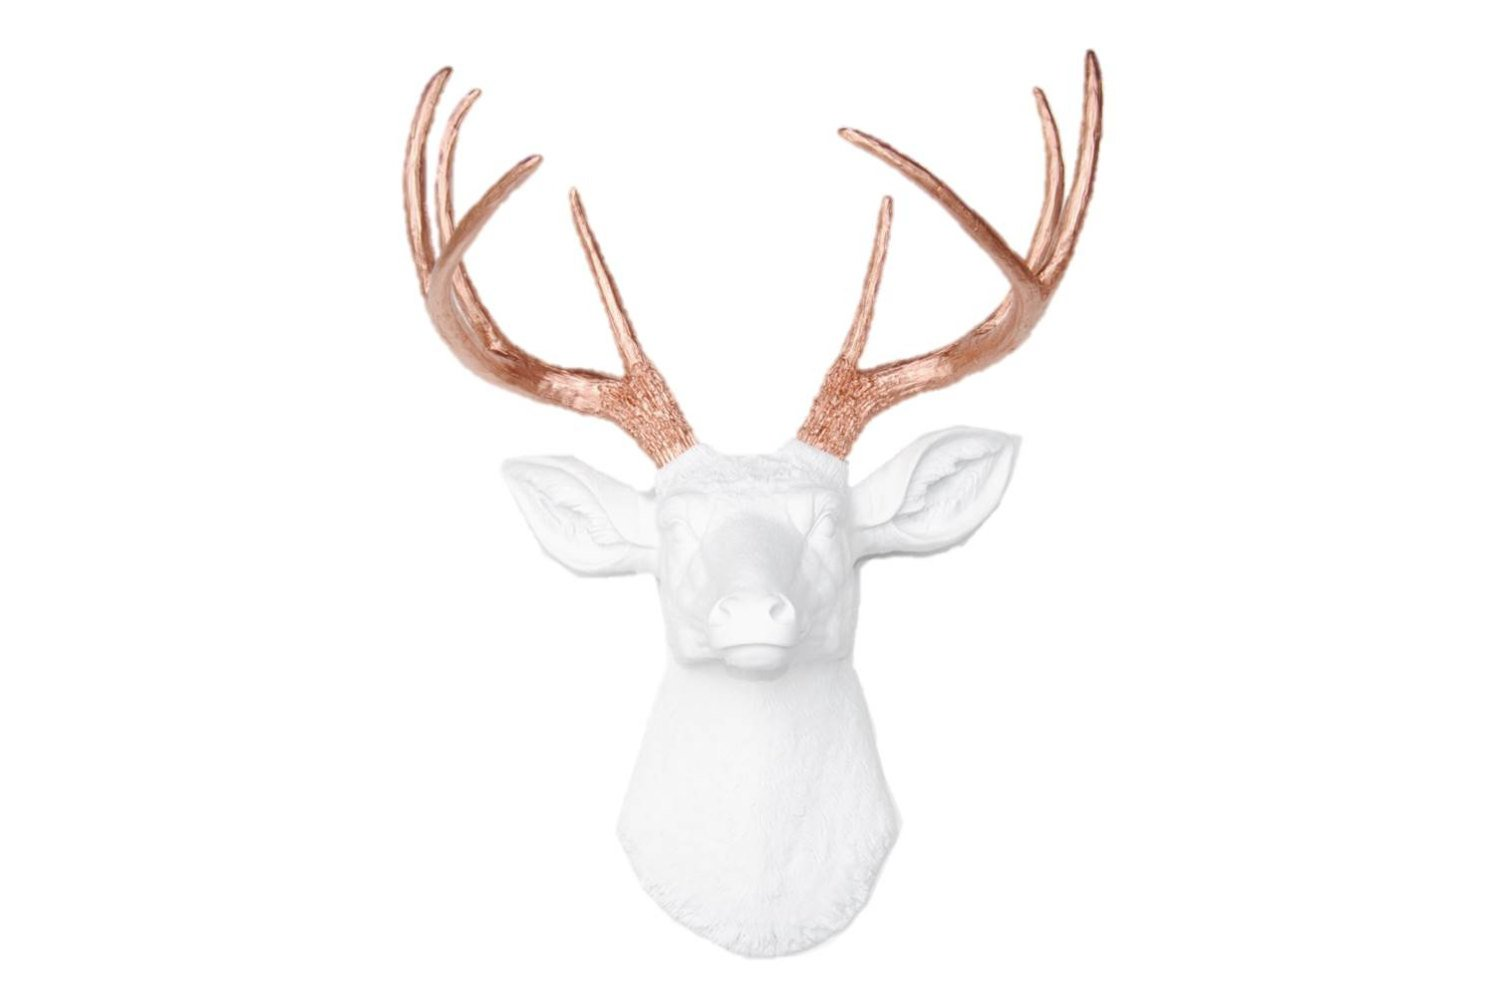 Near and Deer D0111 Faux Taxidermy 8 Point Deer Head Wall Mount, White/Rose Gold